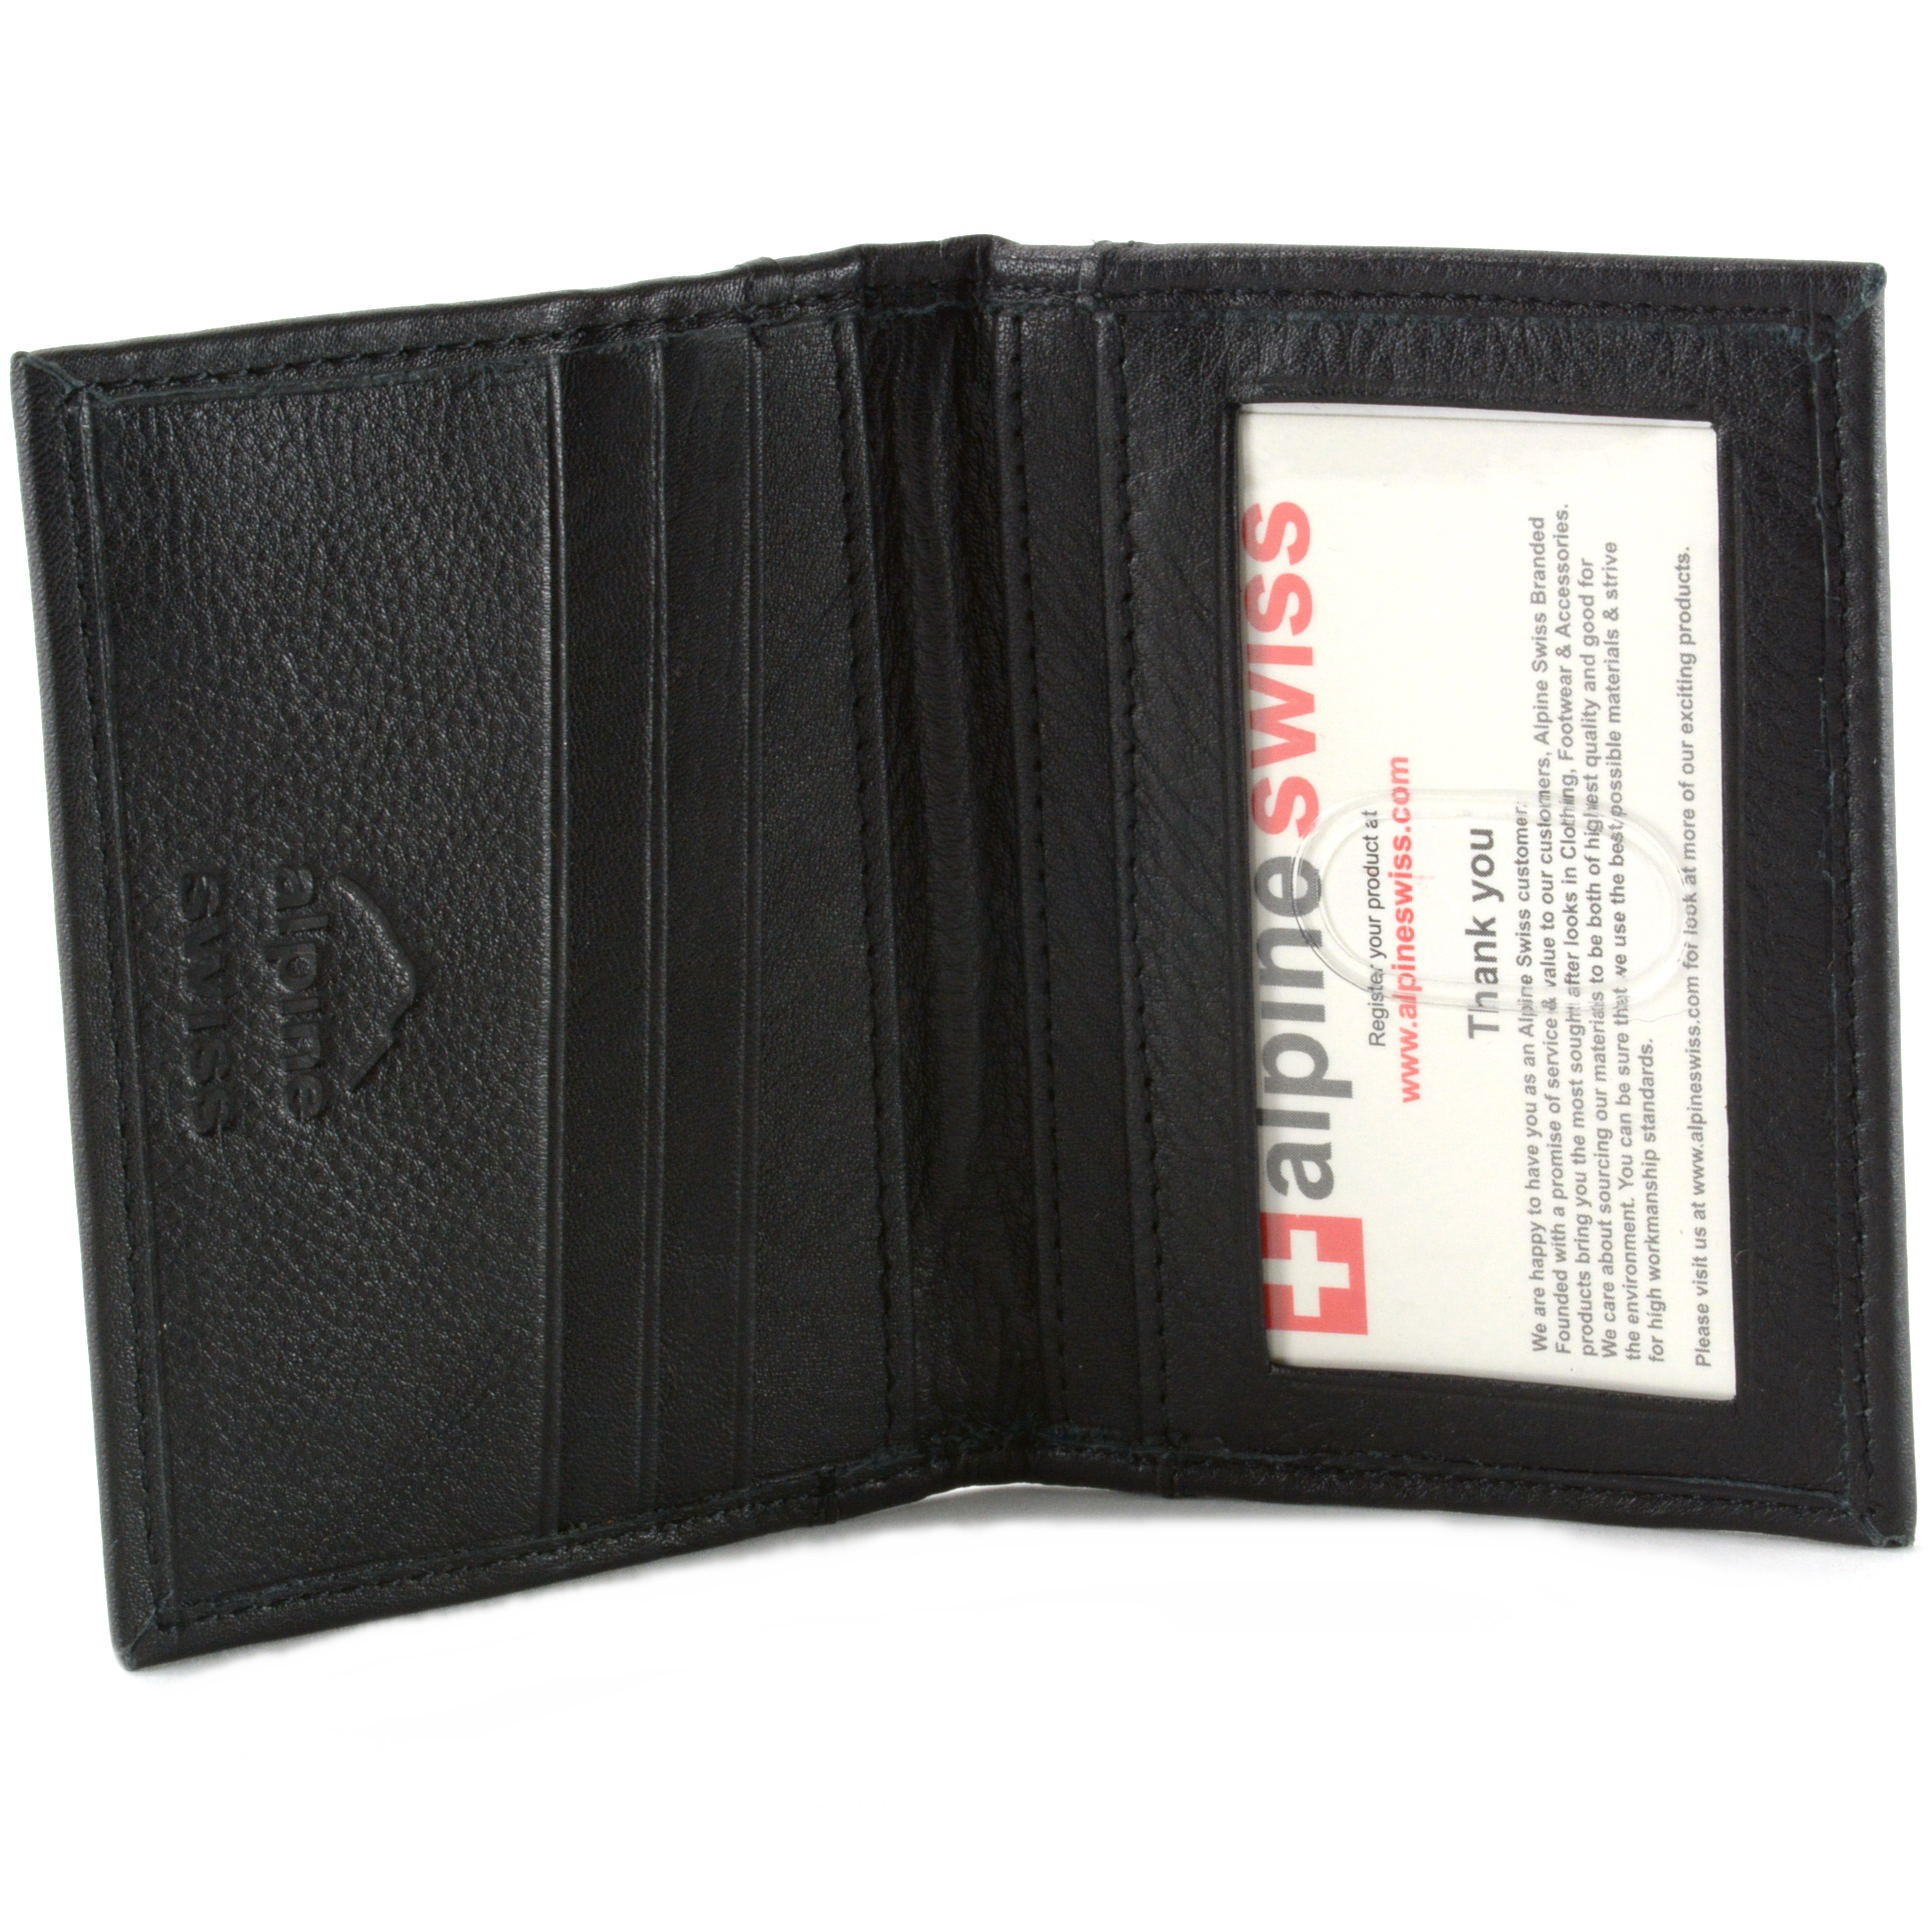 Alpine swiss thin front pocket wallet business card case 2 id picture 18 of 20 magicingreecefo Gallery